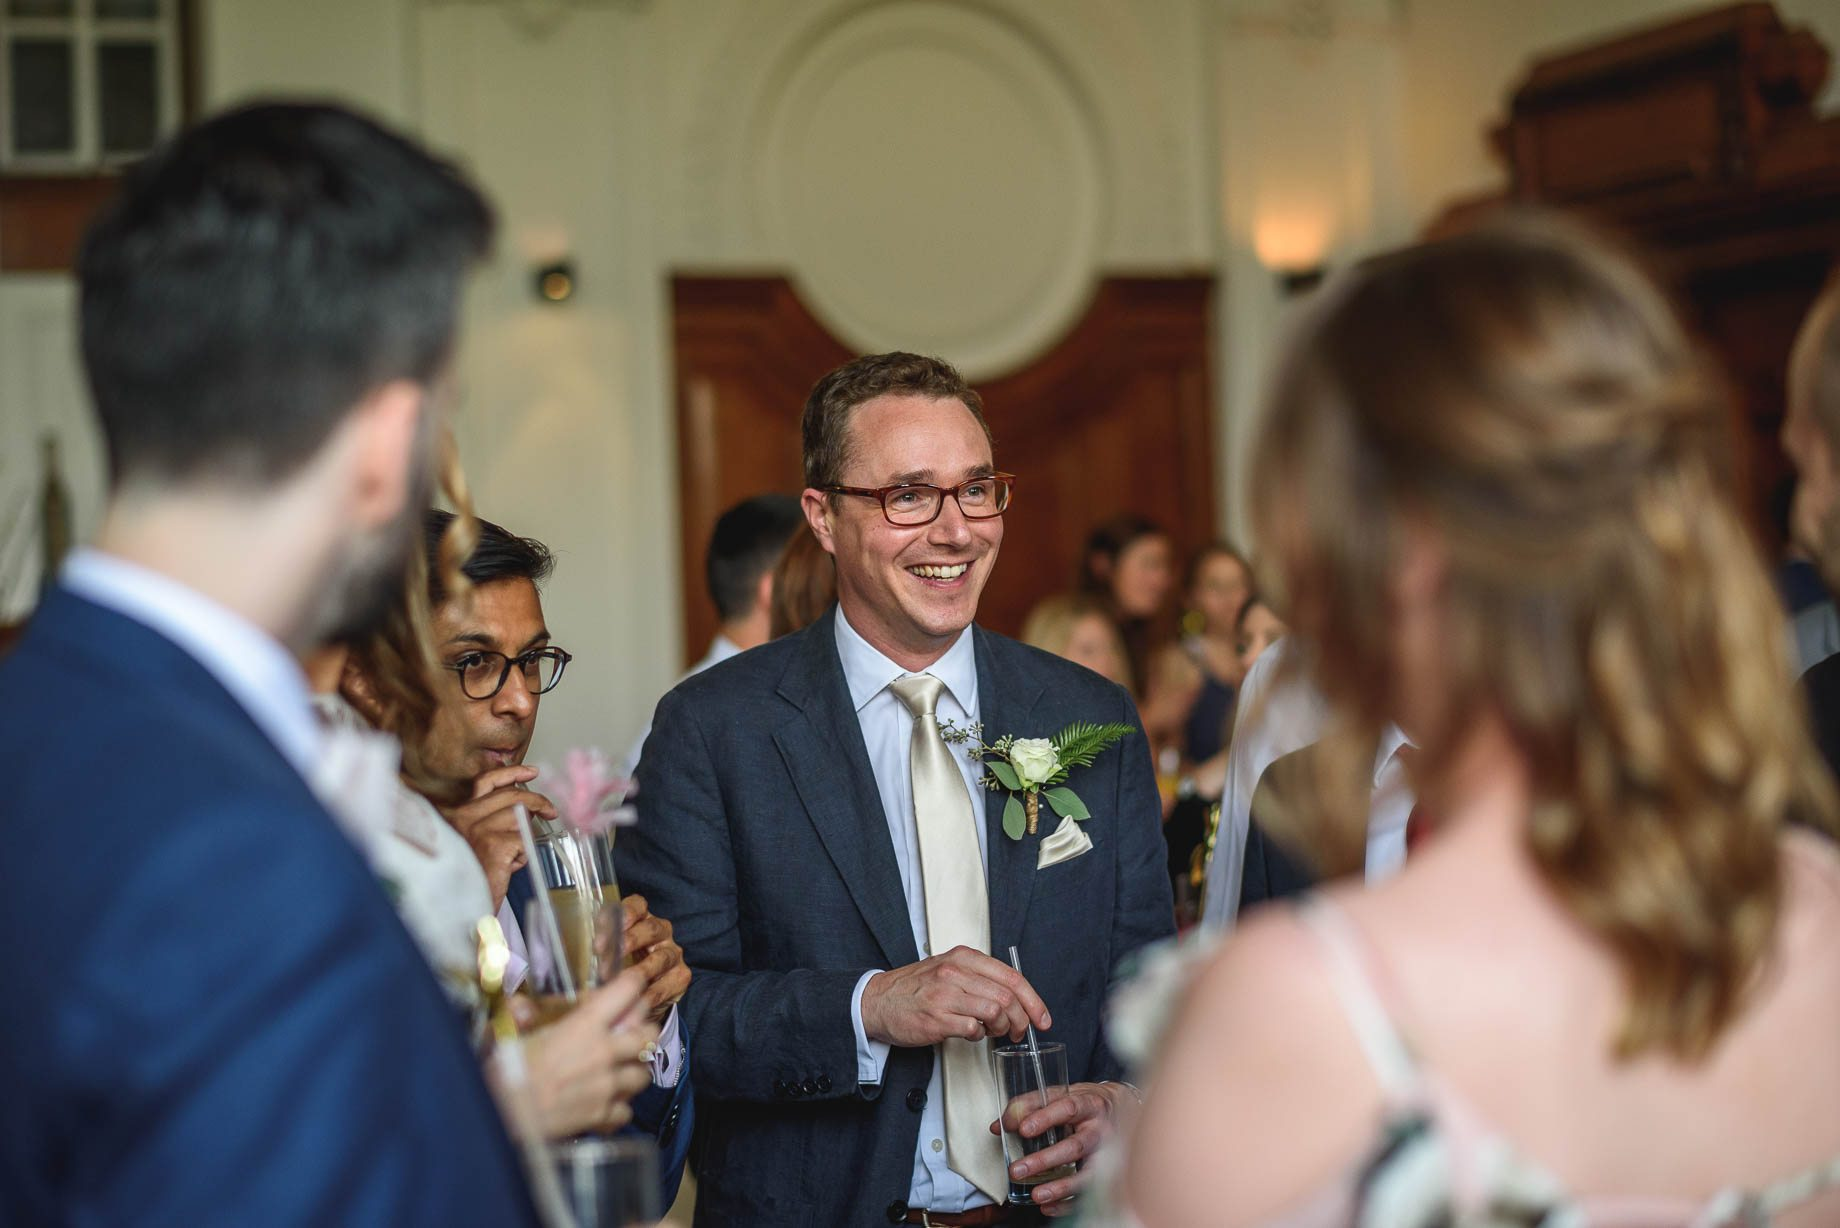 London Wedding Photography - Guy Collier Photography - LJ + Russell (86 of 155)